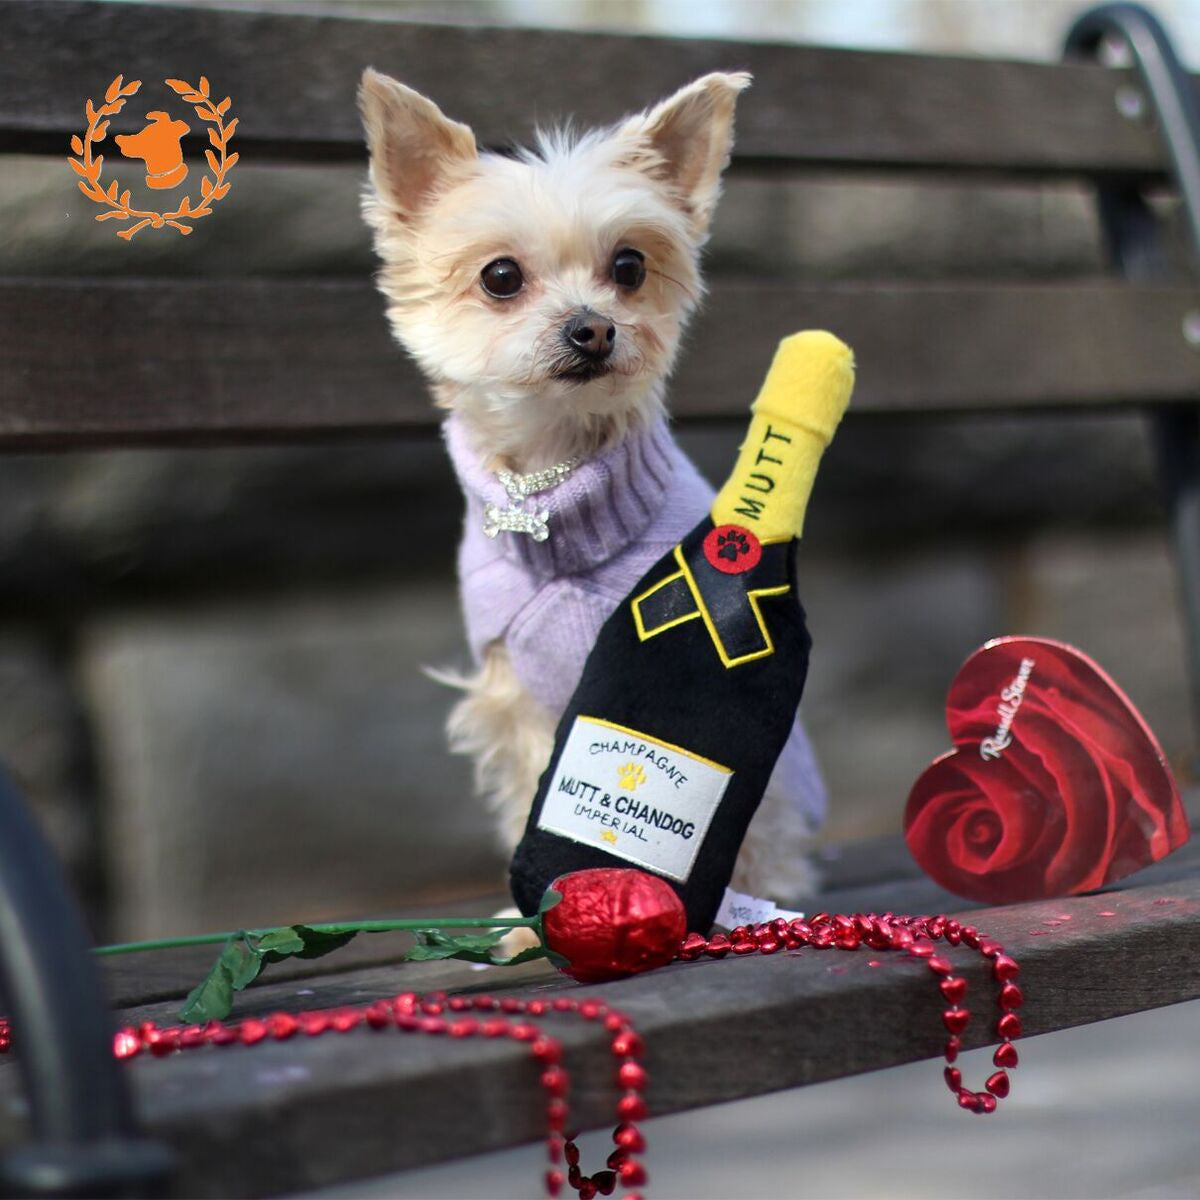 Mutt & Chandog - Champagne Toy - Dog Toy - 2 Sizes